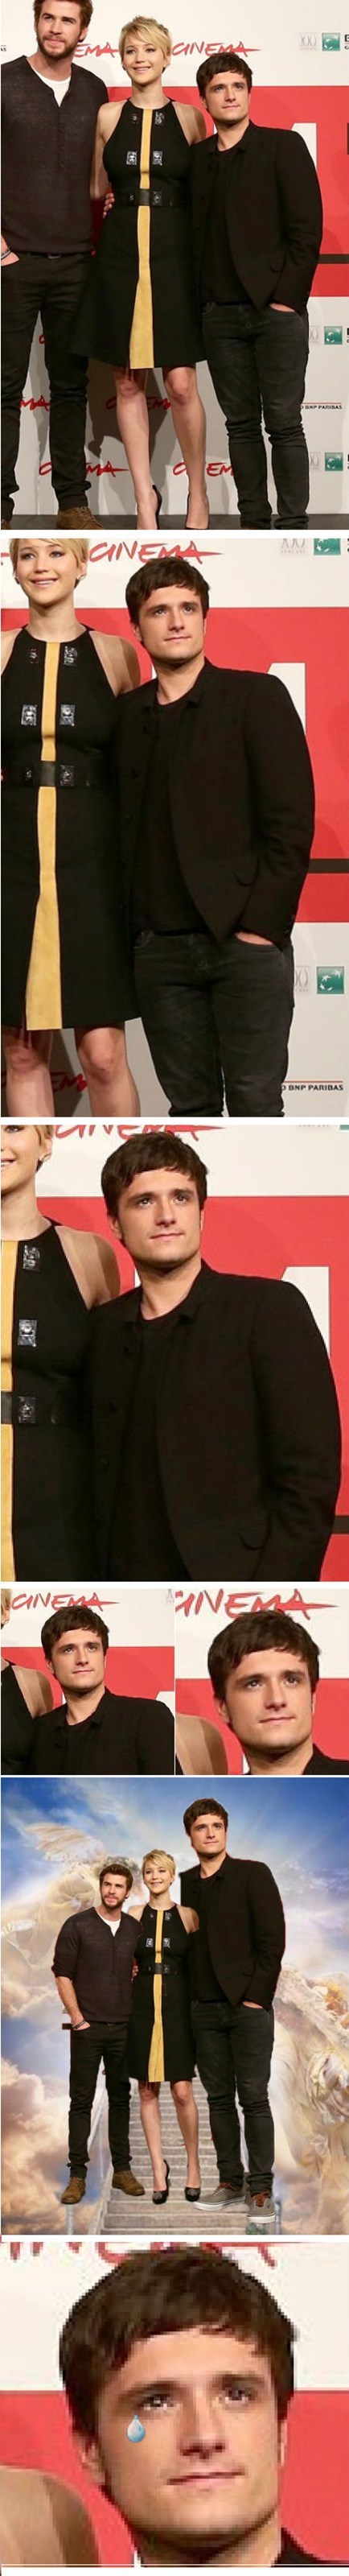 hunger games,josh hutcherson,short,peeta